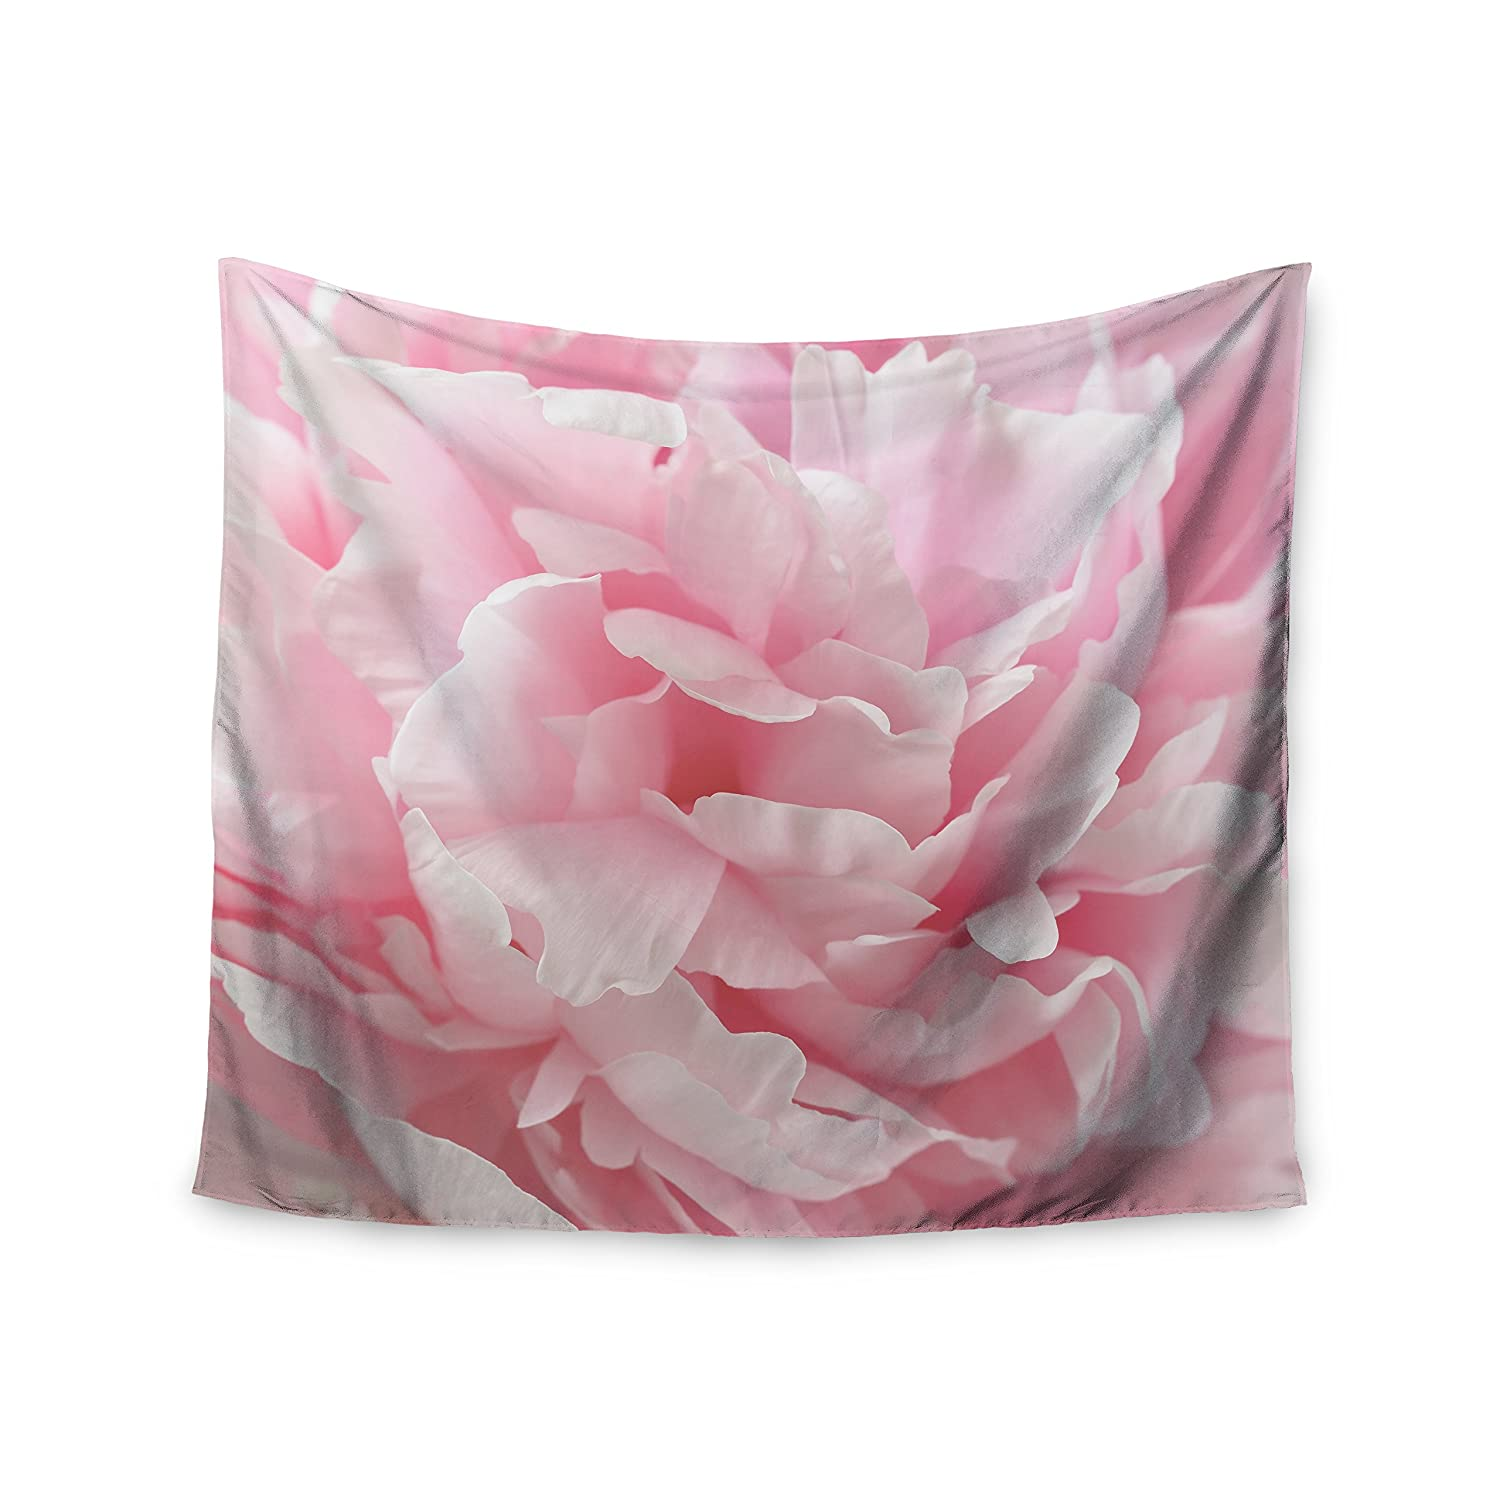 68 x 80 Wall Tapestry Kess InHouse Suzanne Harford Enchanting Pink Pastel Photography